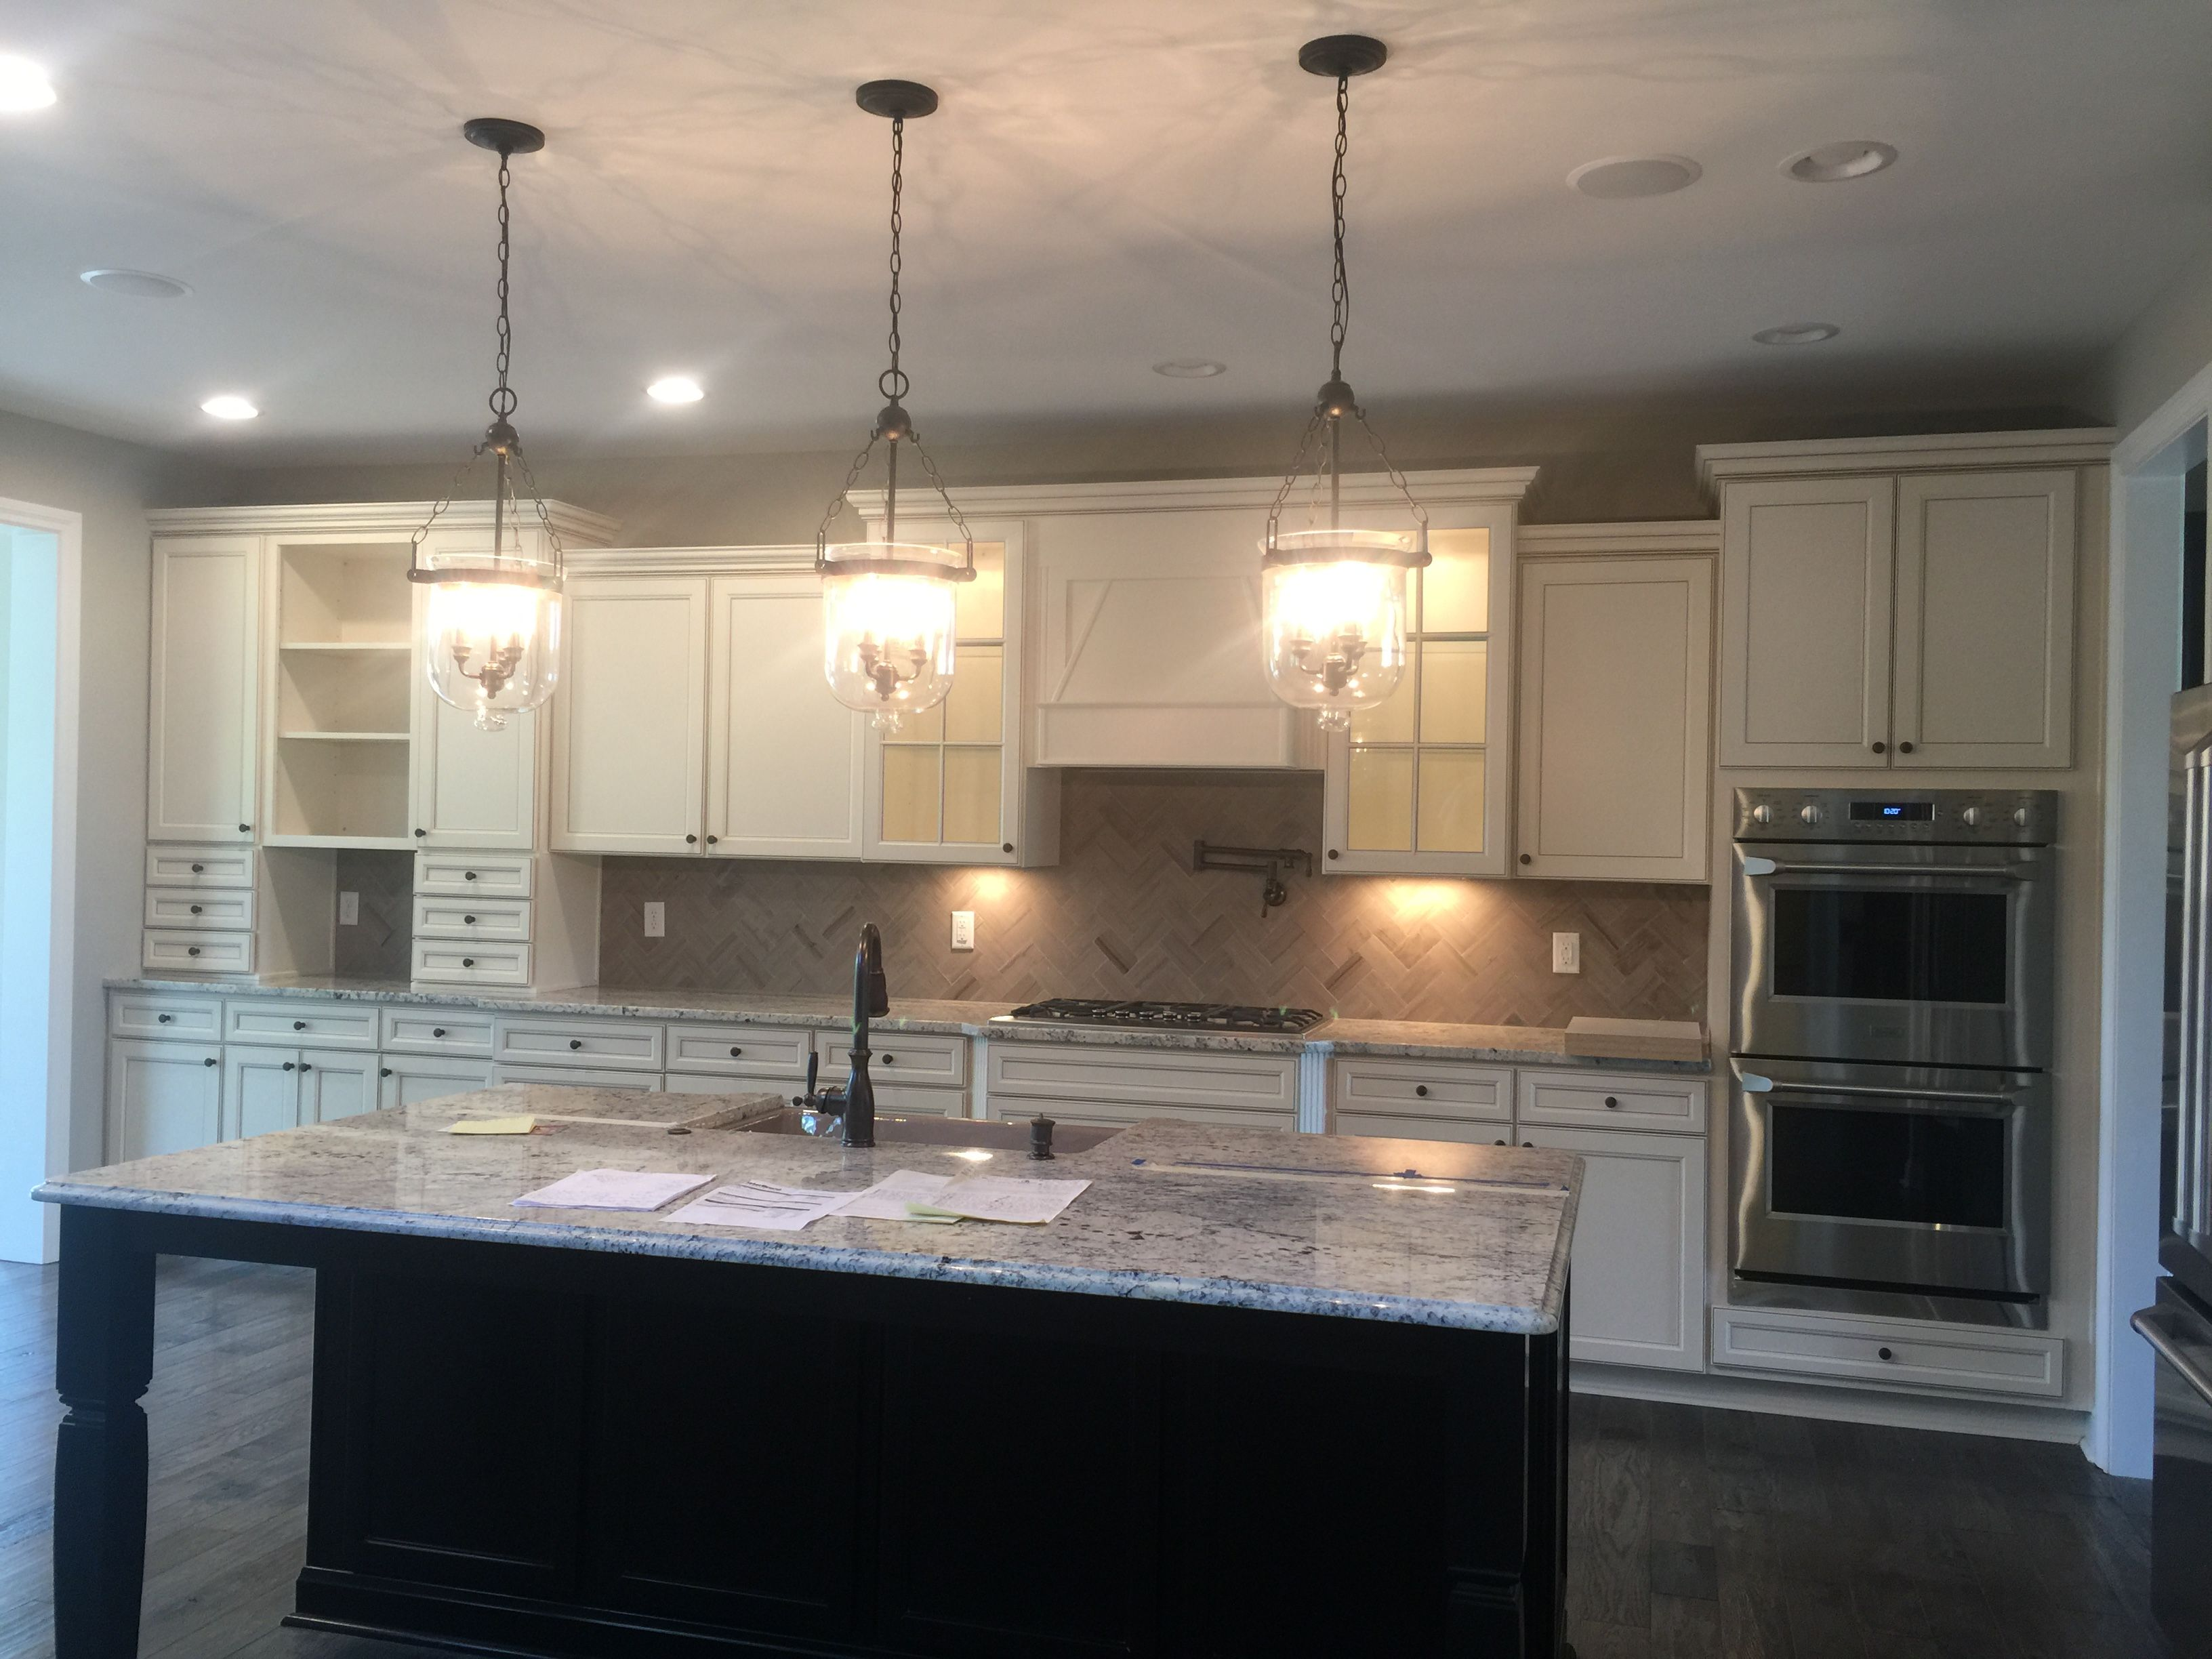 Durham Toasted Antique Cabinets On Perimeter